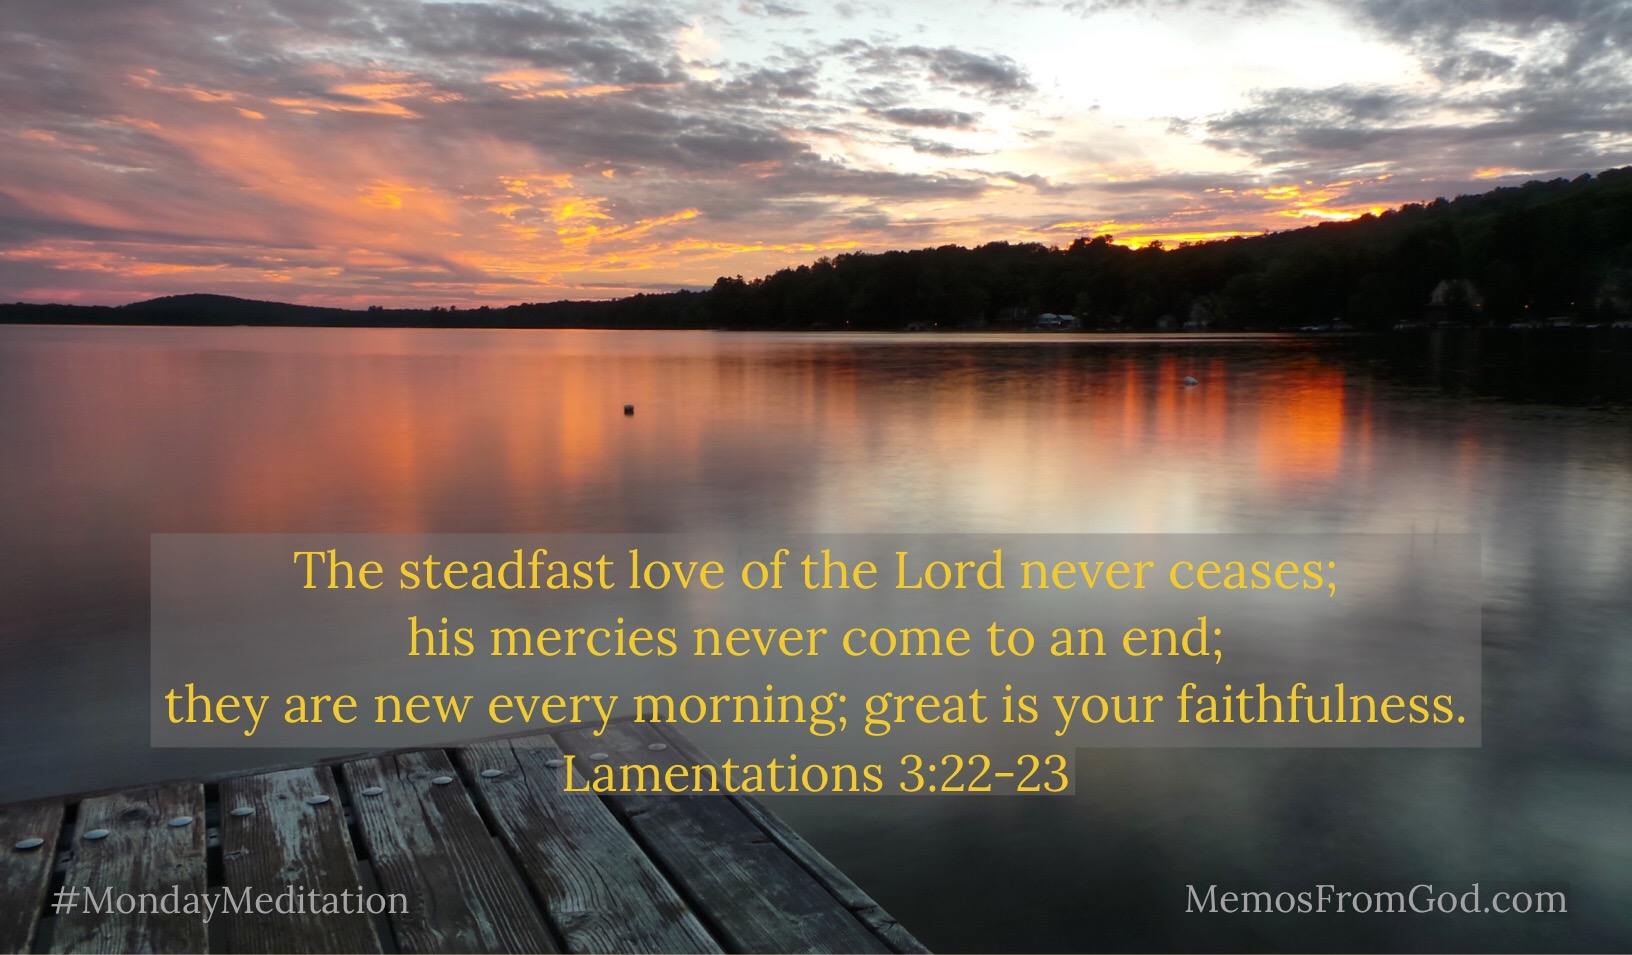 The steadfast love of the Lord never ceases; his mercies never come to an end; they are new every morning; great is your faithfulness. Lamentations 3:22-23